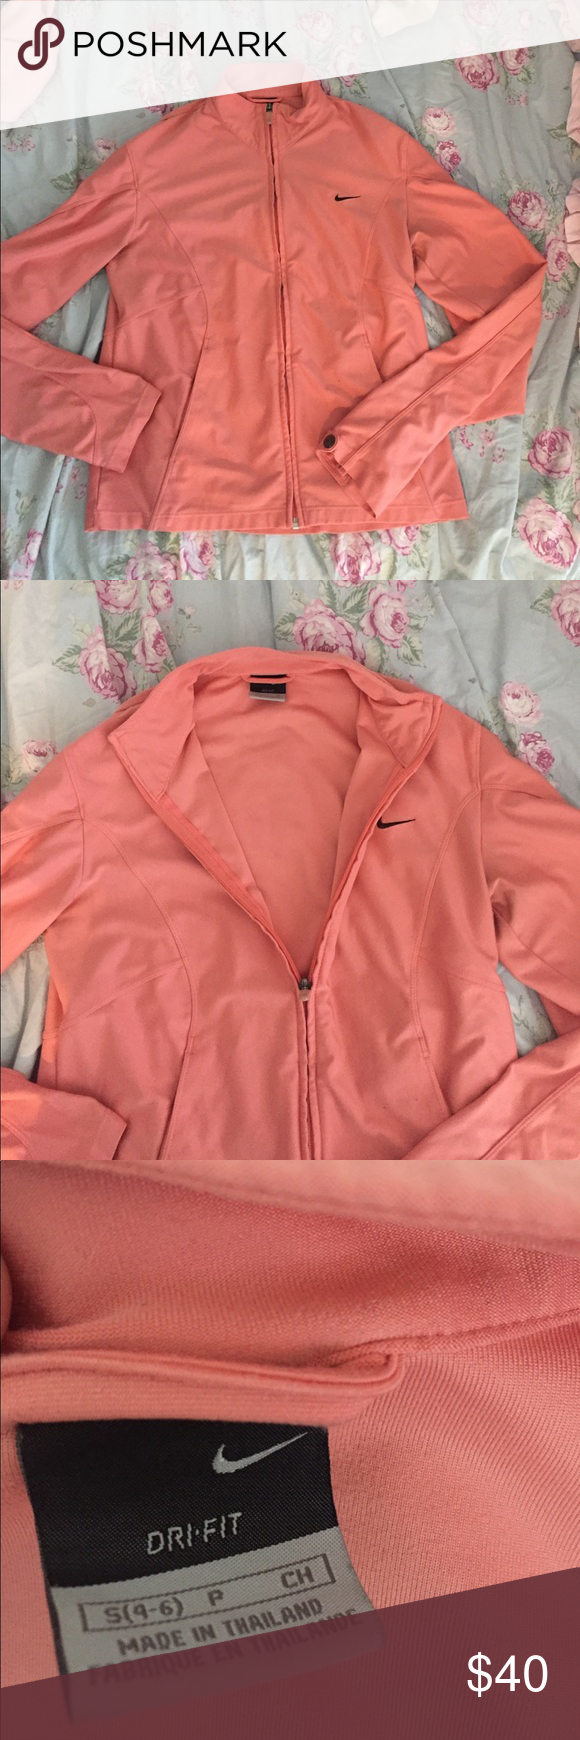 NEVER WORN Nike dri-fit jacket !!! extremely cute and rare Nike dri-fit jacket (will take offers) Never worn!!!!! Nike Jackets & Coats